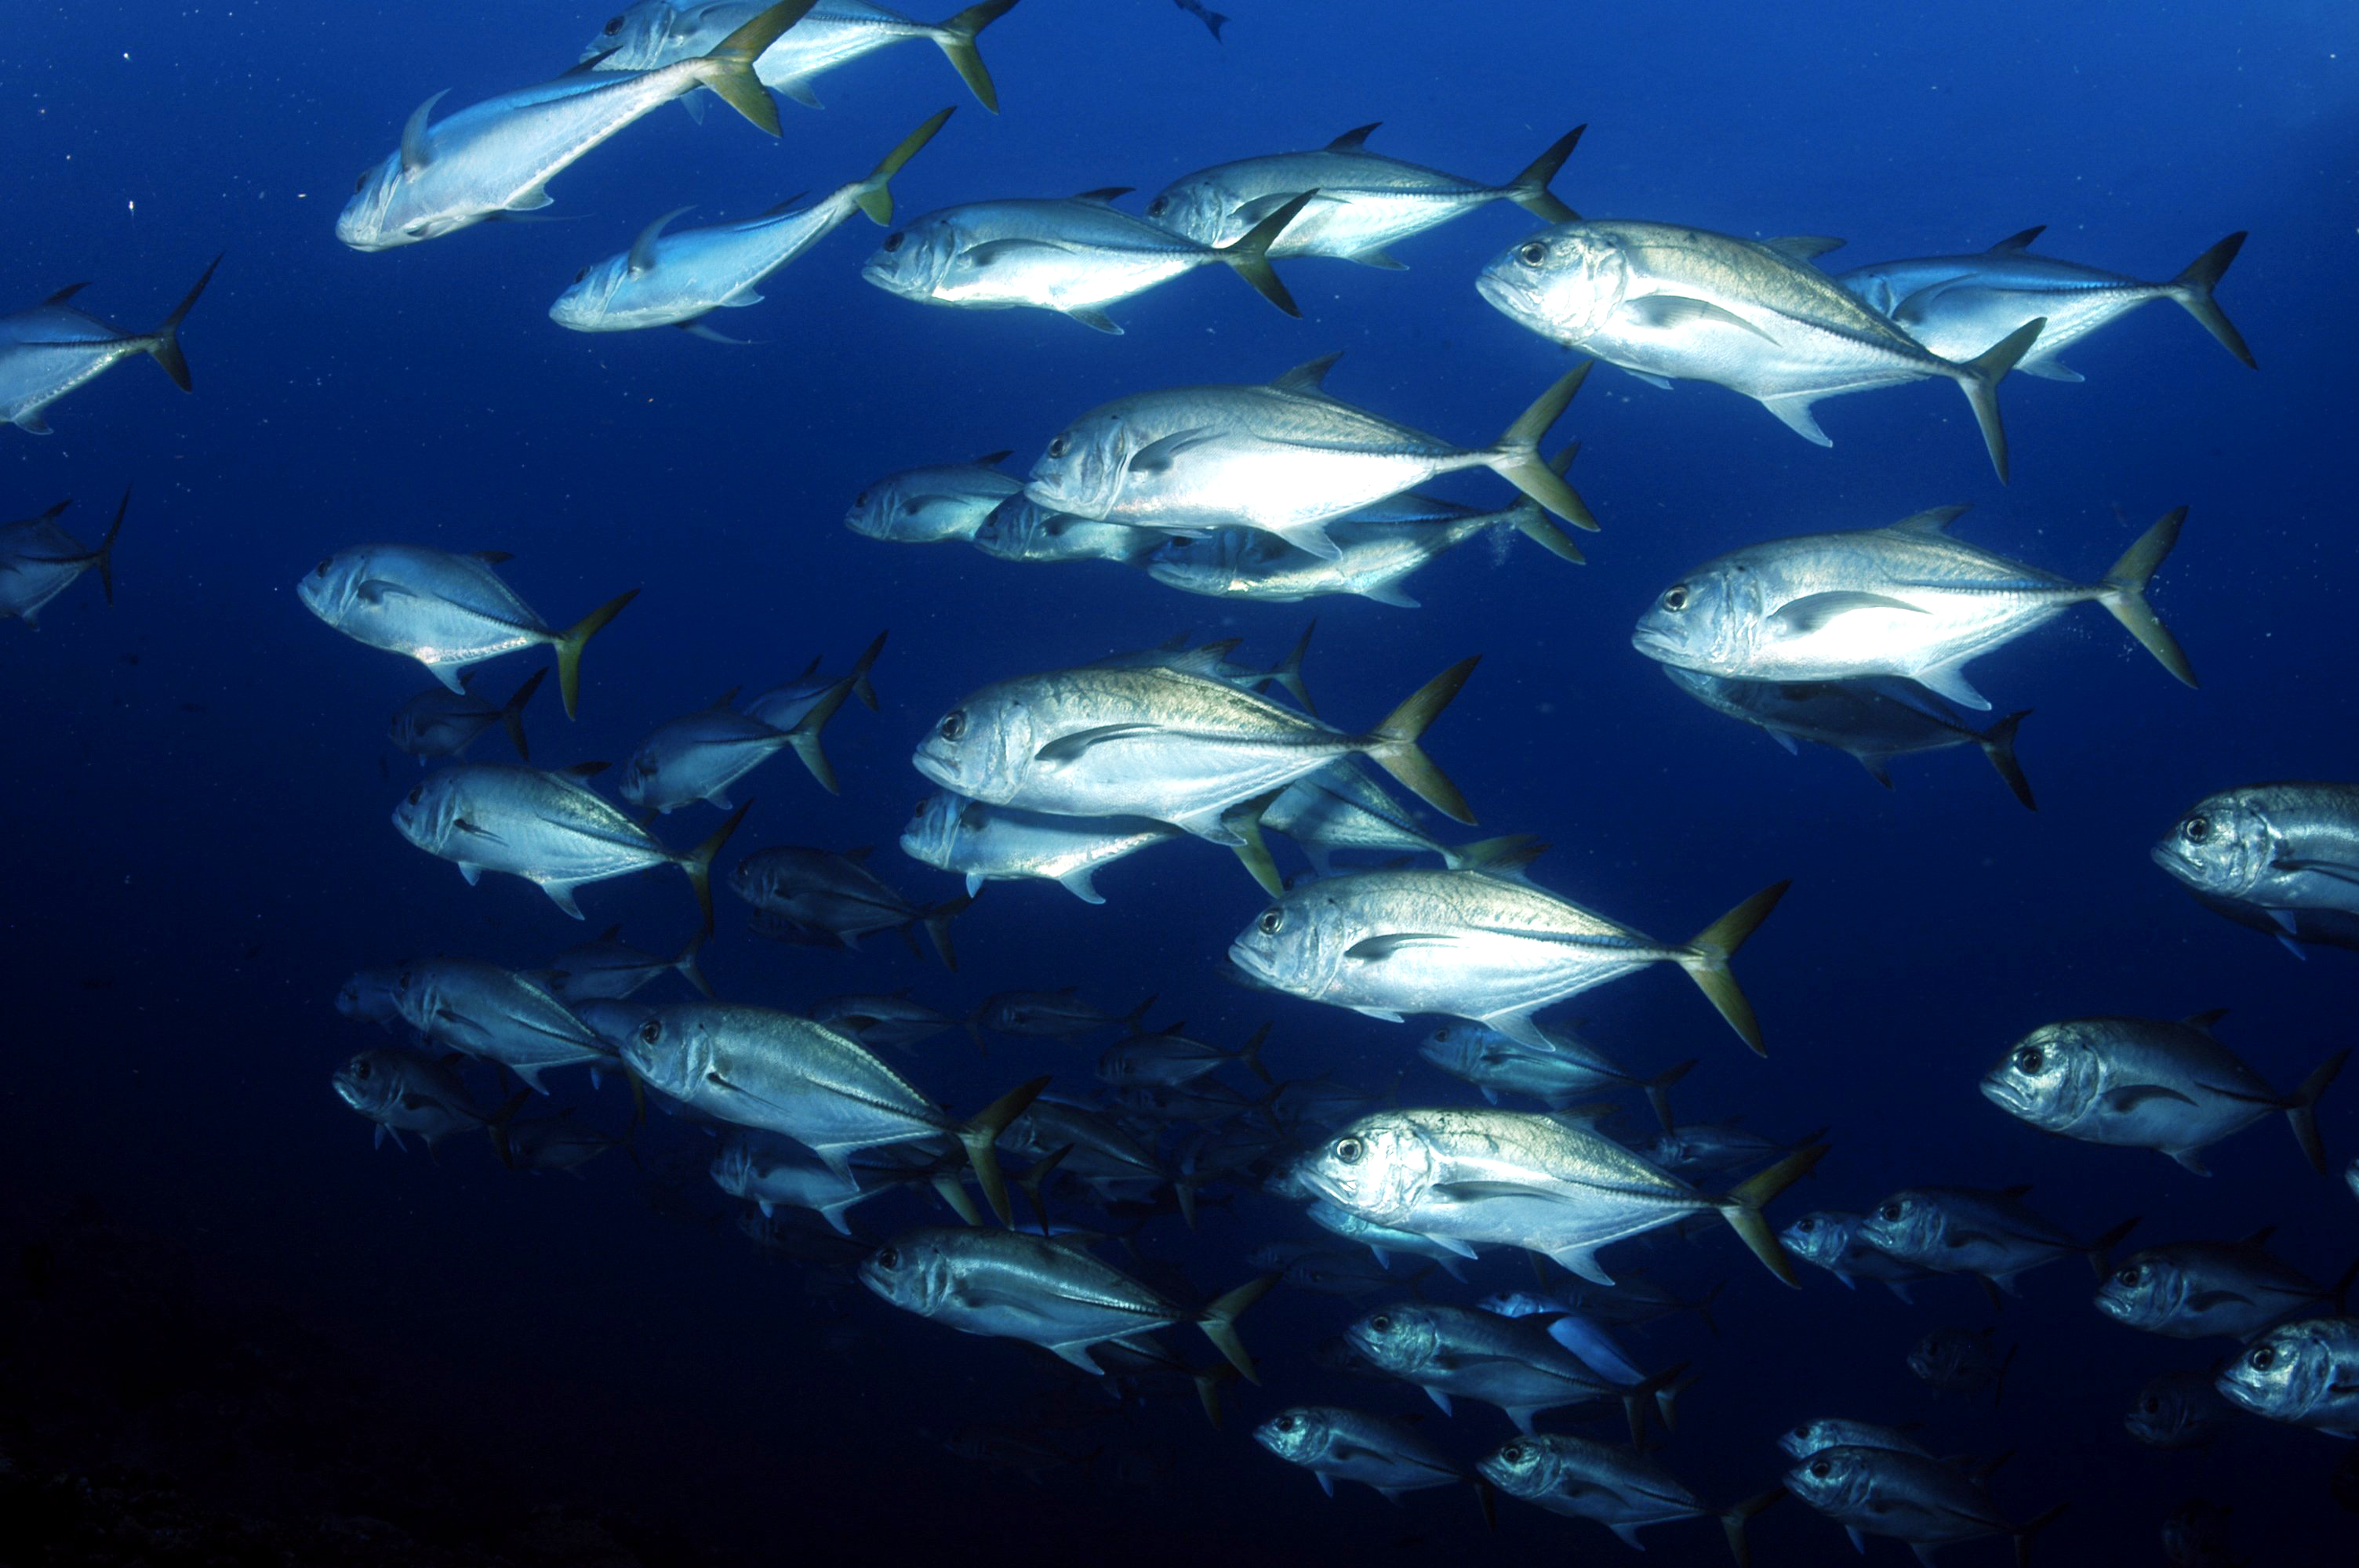 A school of Horse-eye jacks in Flower Garden Banks National Marine Sanctuary in the Gulf of Mexico.